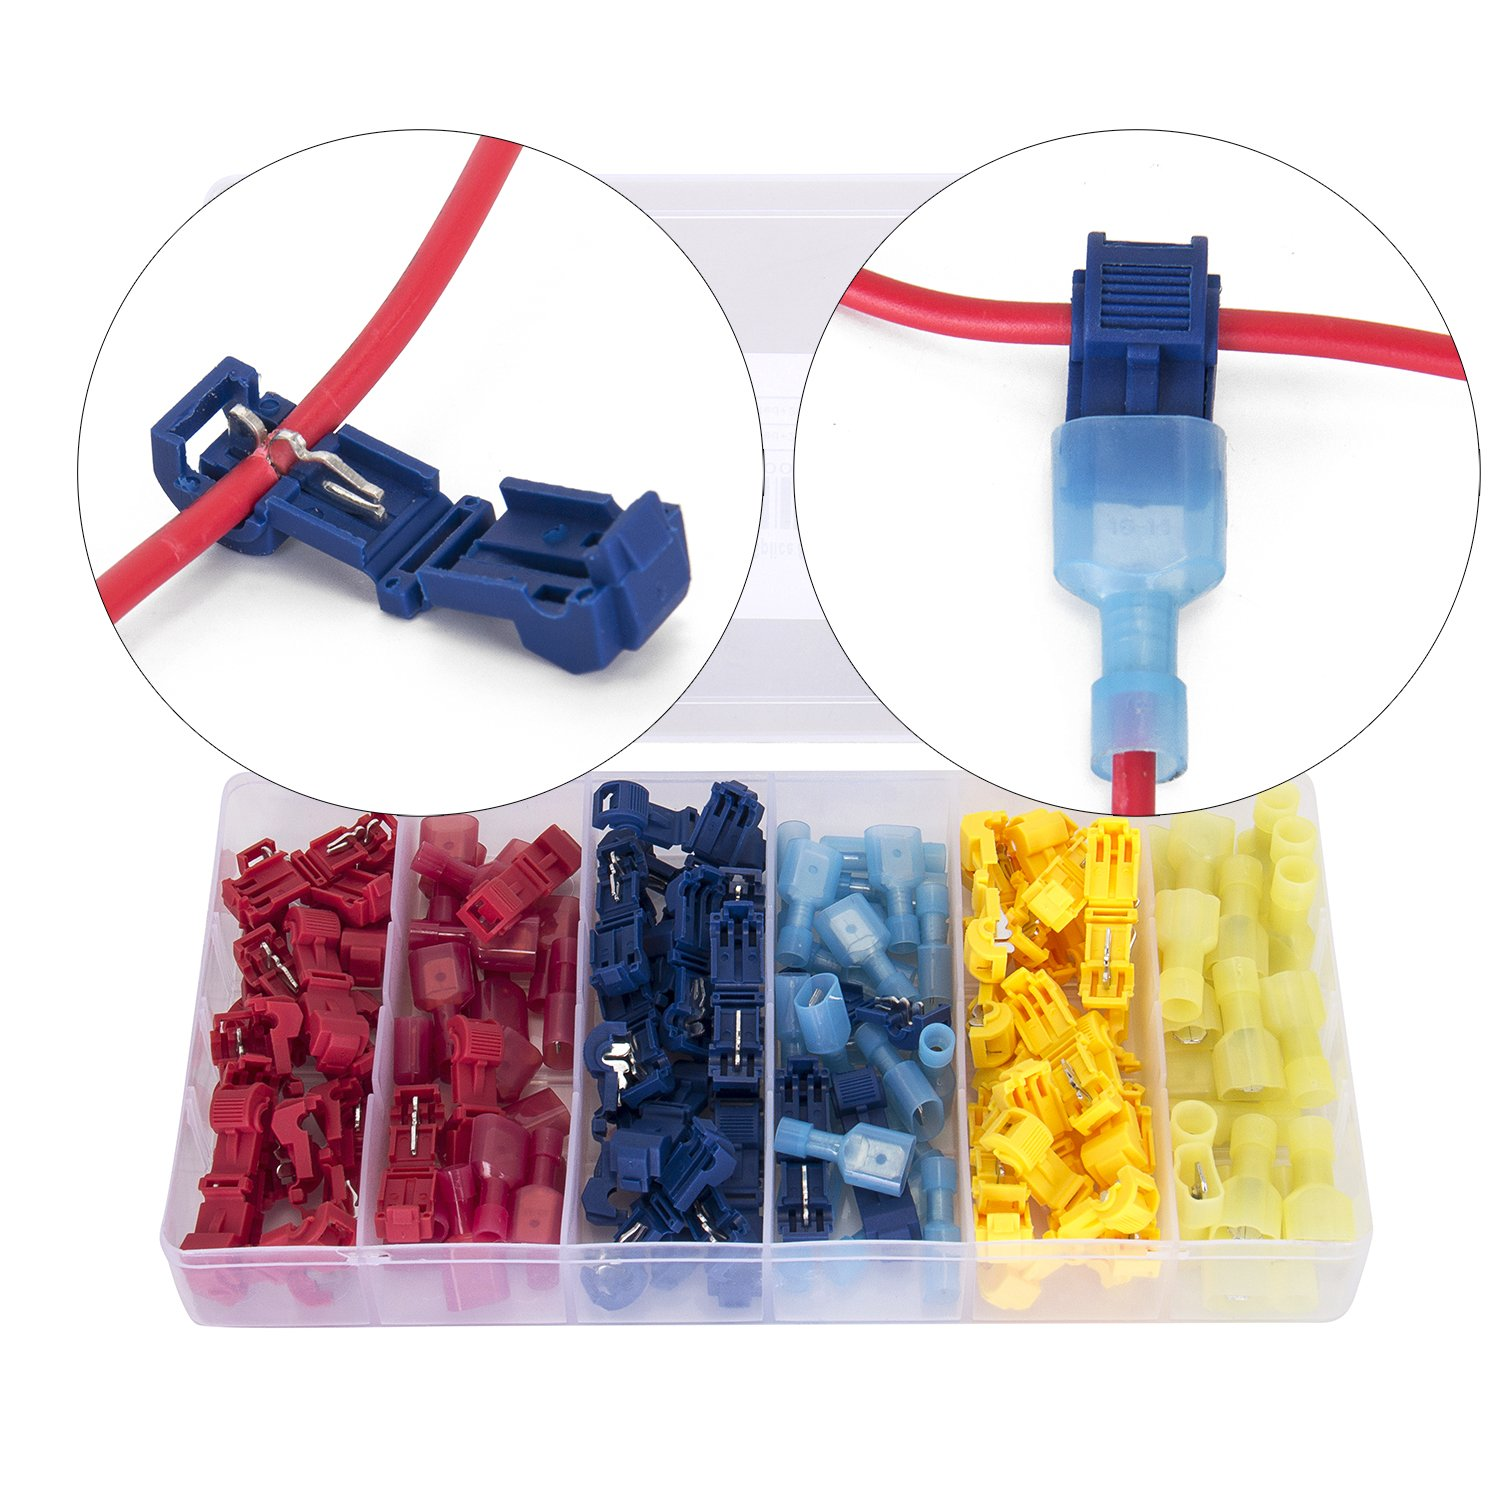 Ginsco 120 Pcs/60 Pairs Quick Splice Wire Terminals T-Tap Self-stripping with Nylon Fully Insulated Male Quick Disconnects Kit